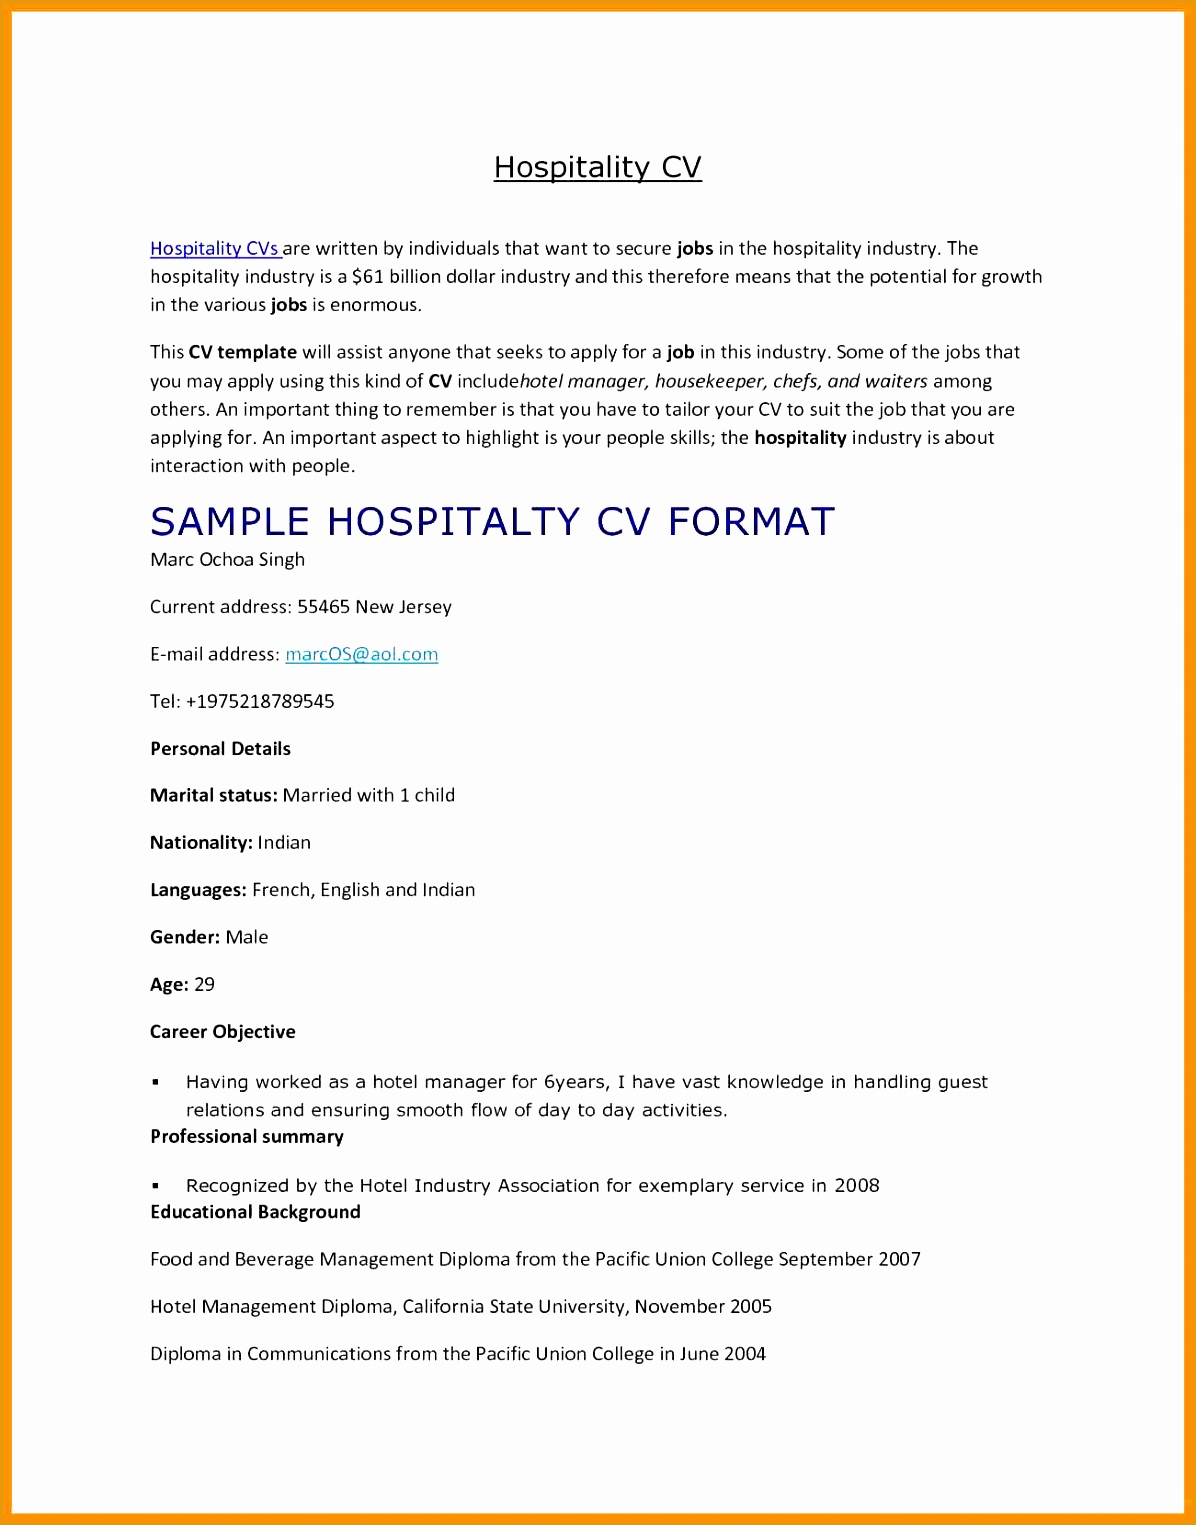 Management Resume Samples Free 6 Hospitality Curriculum Vitae Free Samples Examples